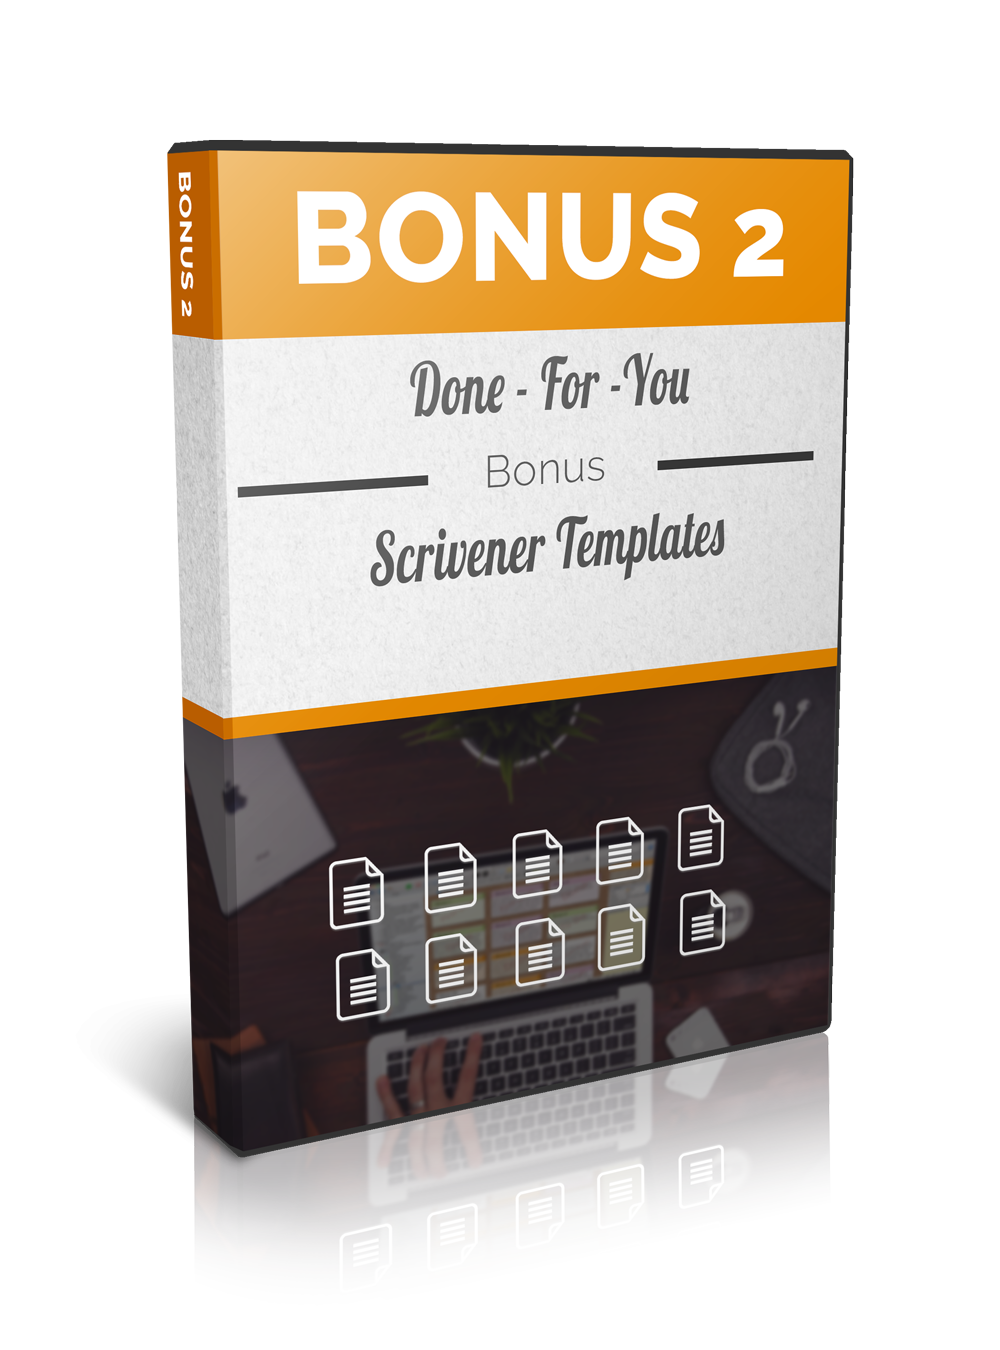 www.learn-scrivener-fast.com Scrivener Training & Coaching Course - Bonus 2 - Done For You Templates